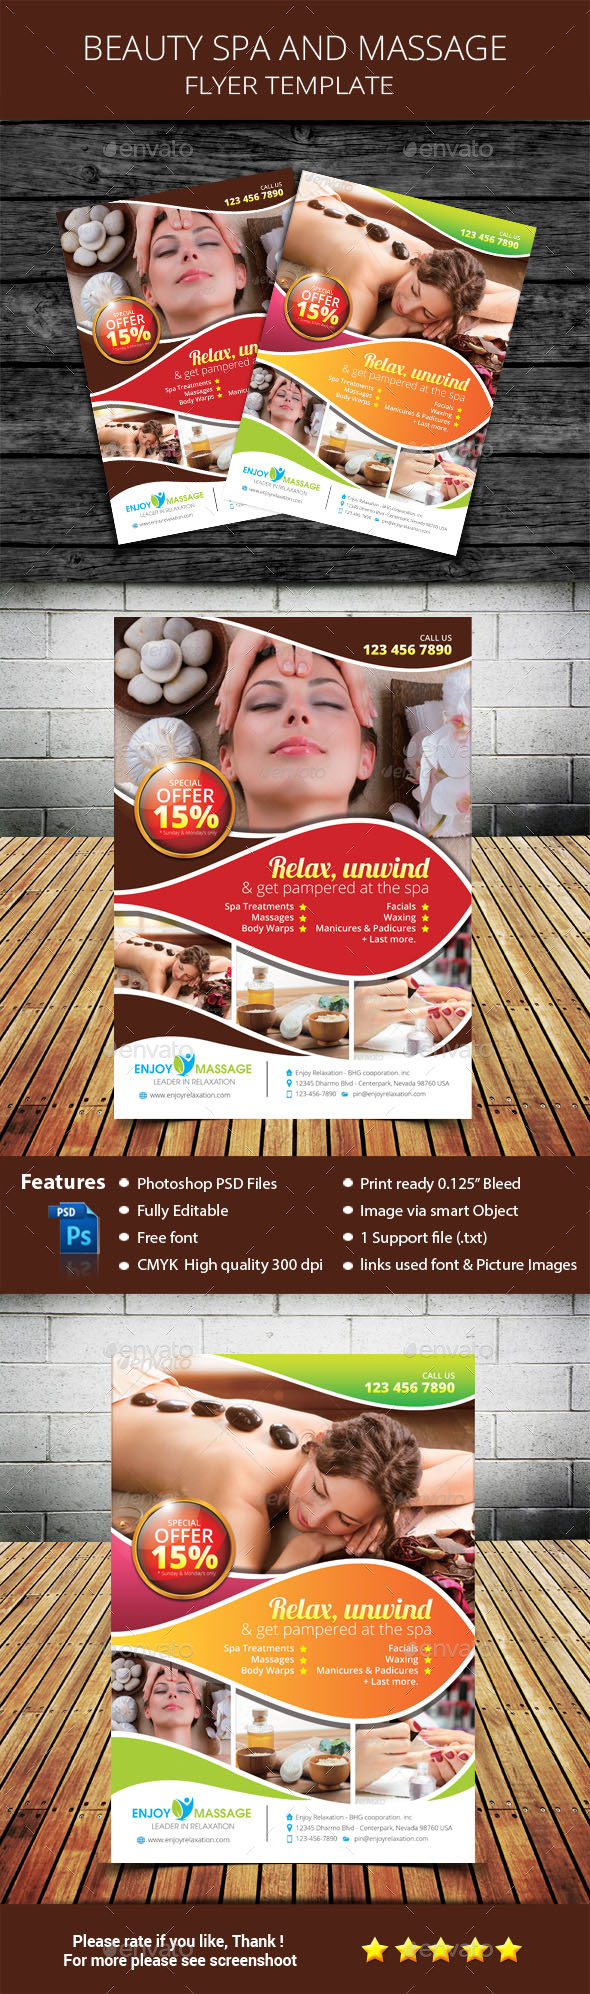 Beauty Spa and Massage Flyer Template - Commerce Flyers